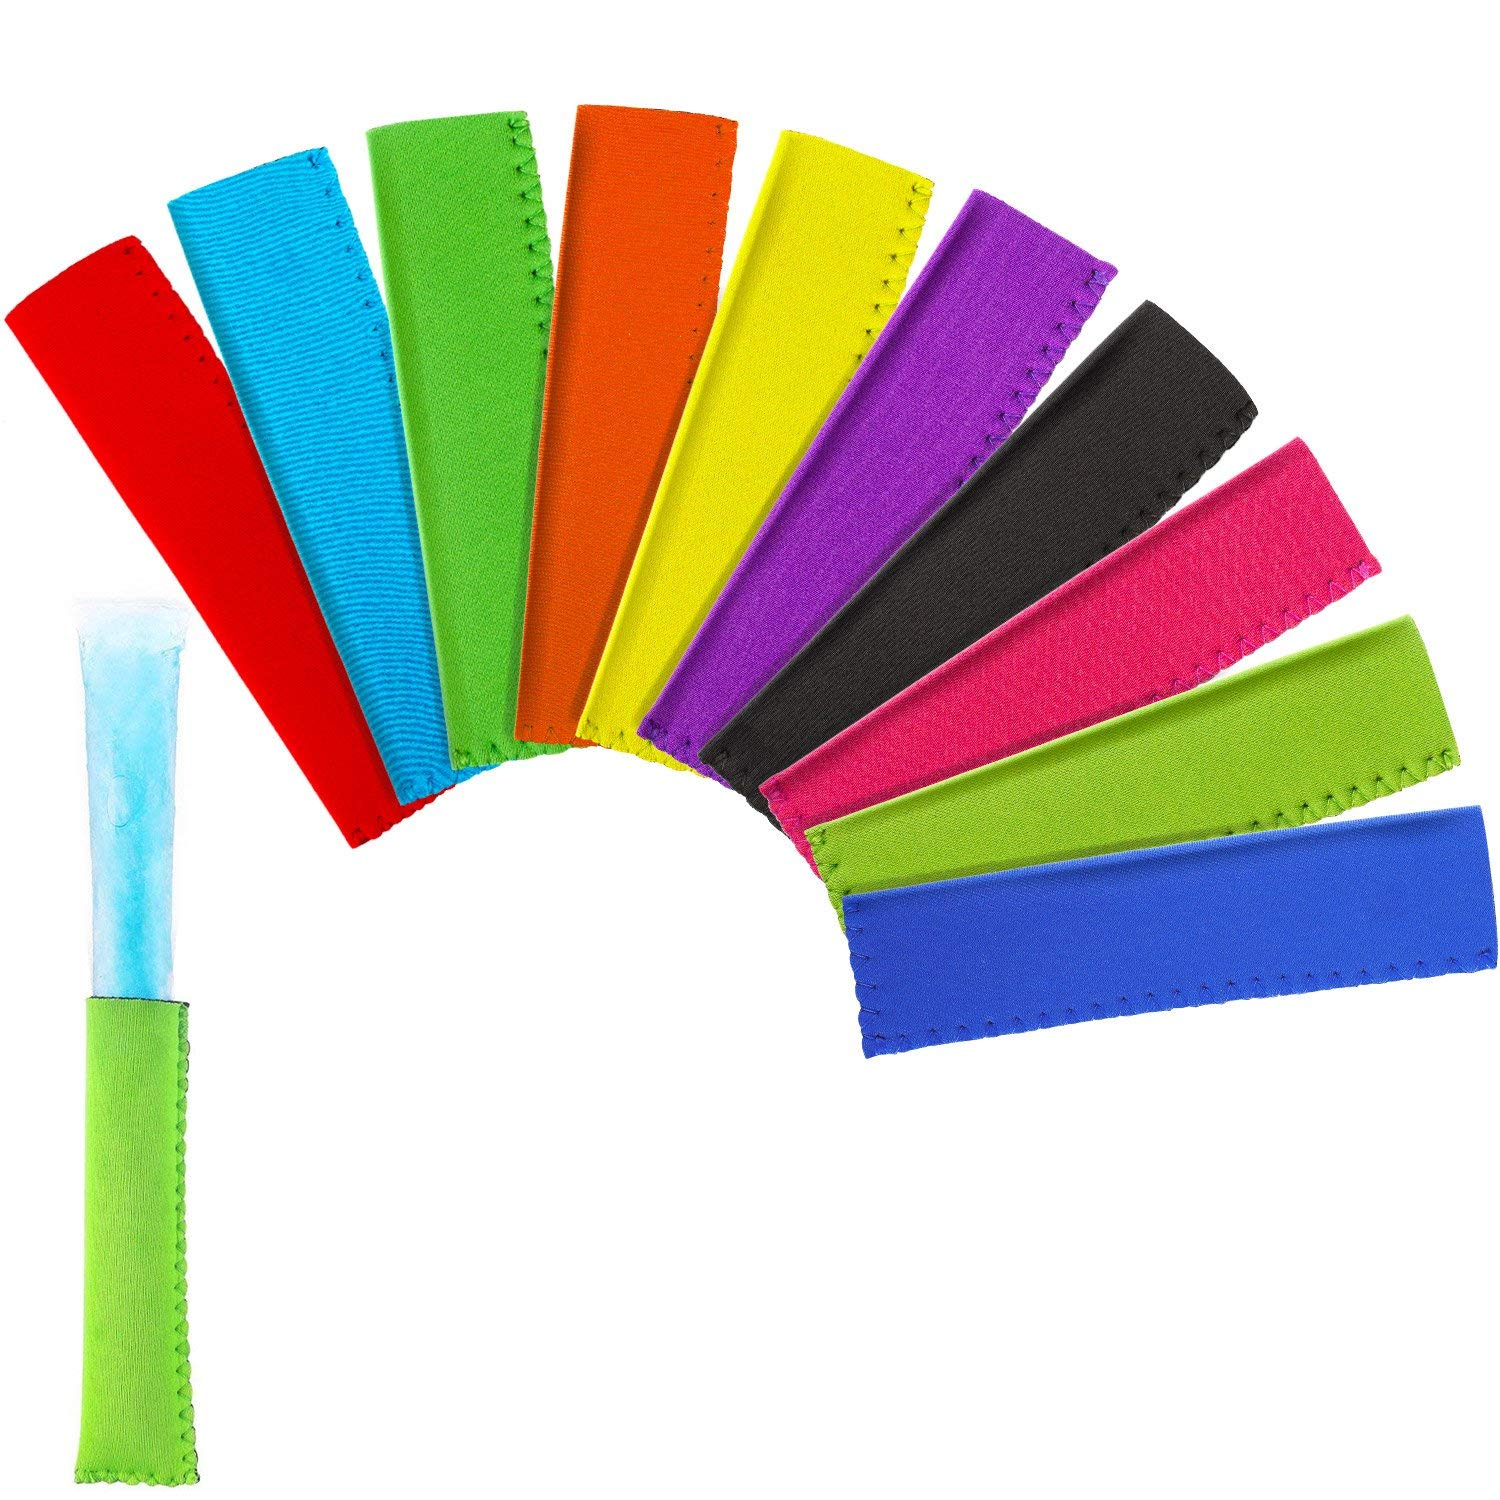 BBTO Popsicle Holders Ice Pop Sleeves Bags Freezer Insulation Pop Sleeves, 10 Colors (20)